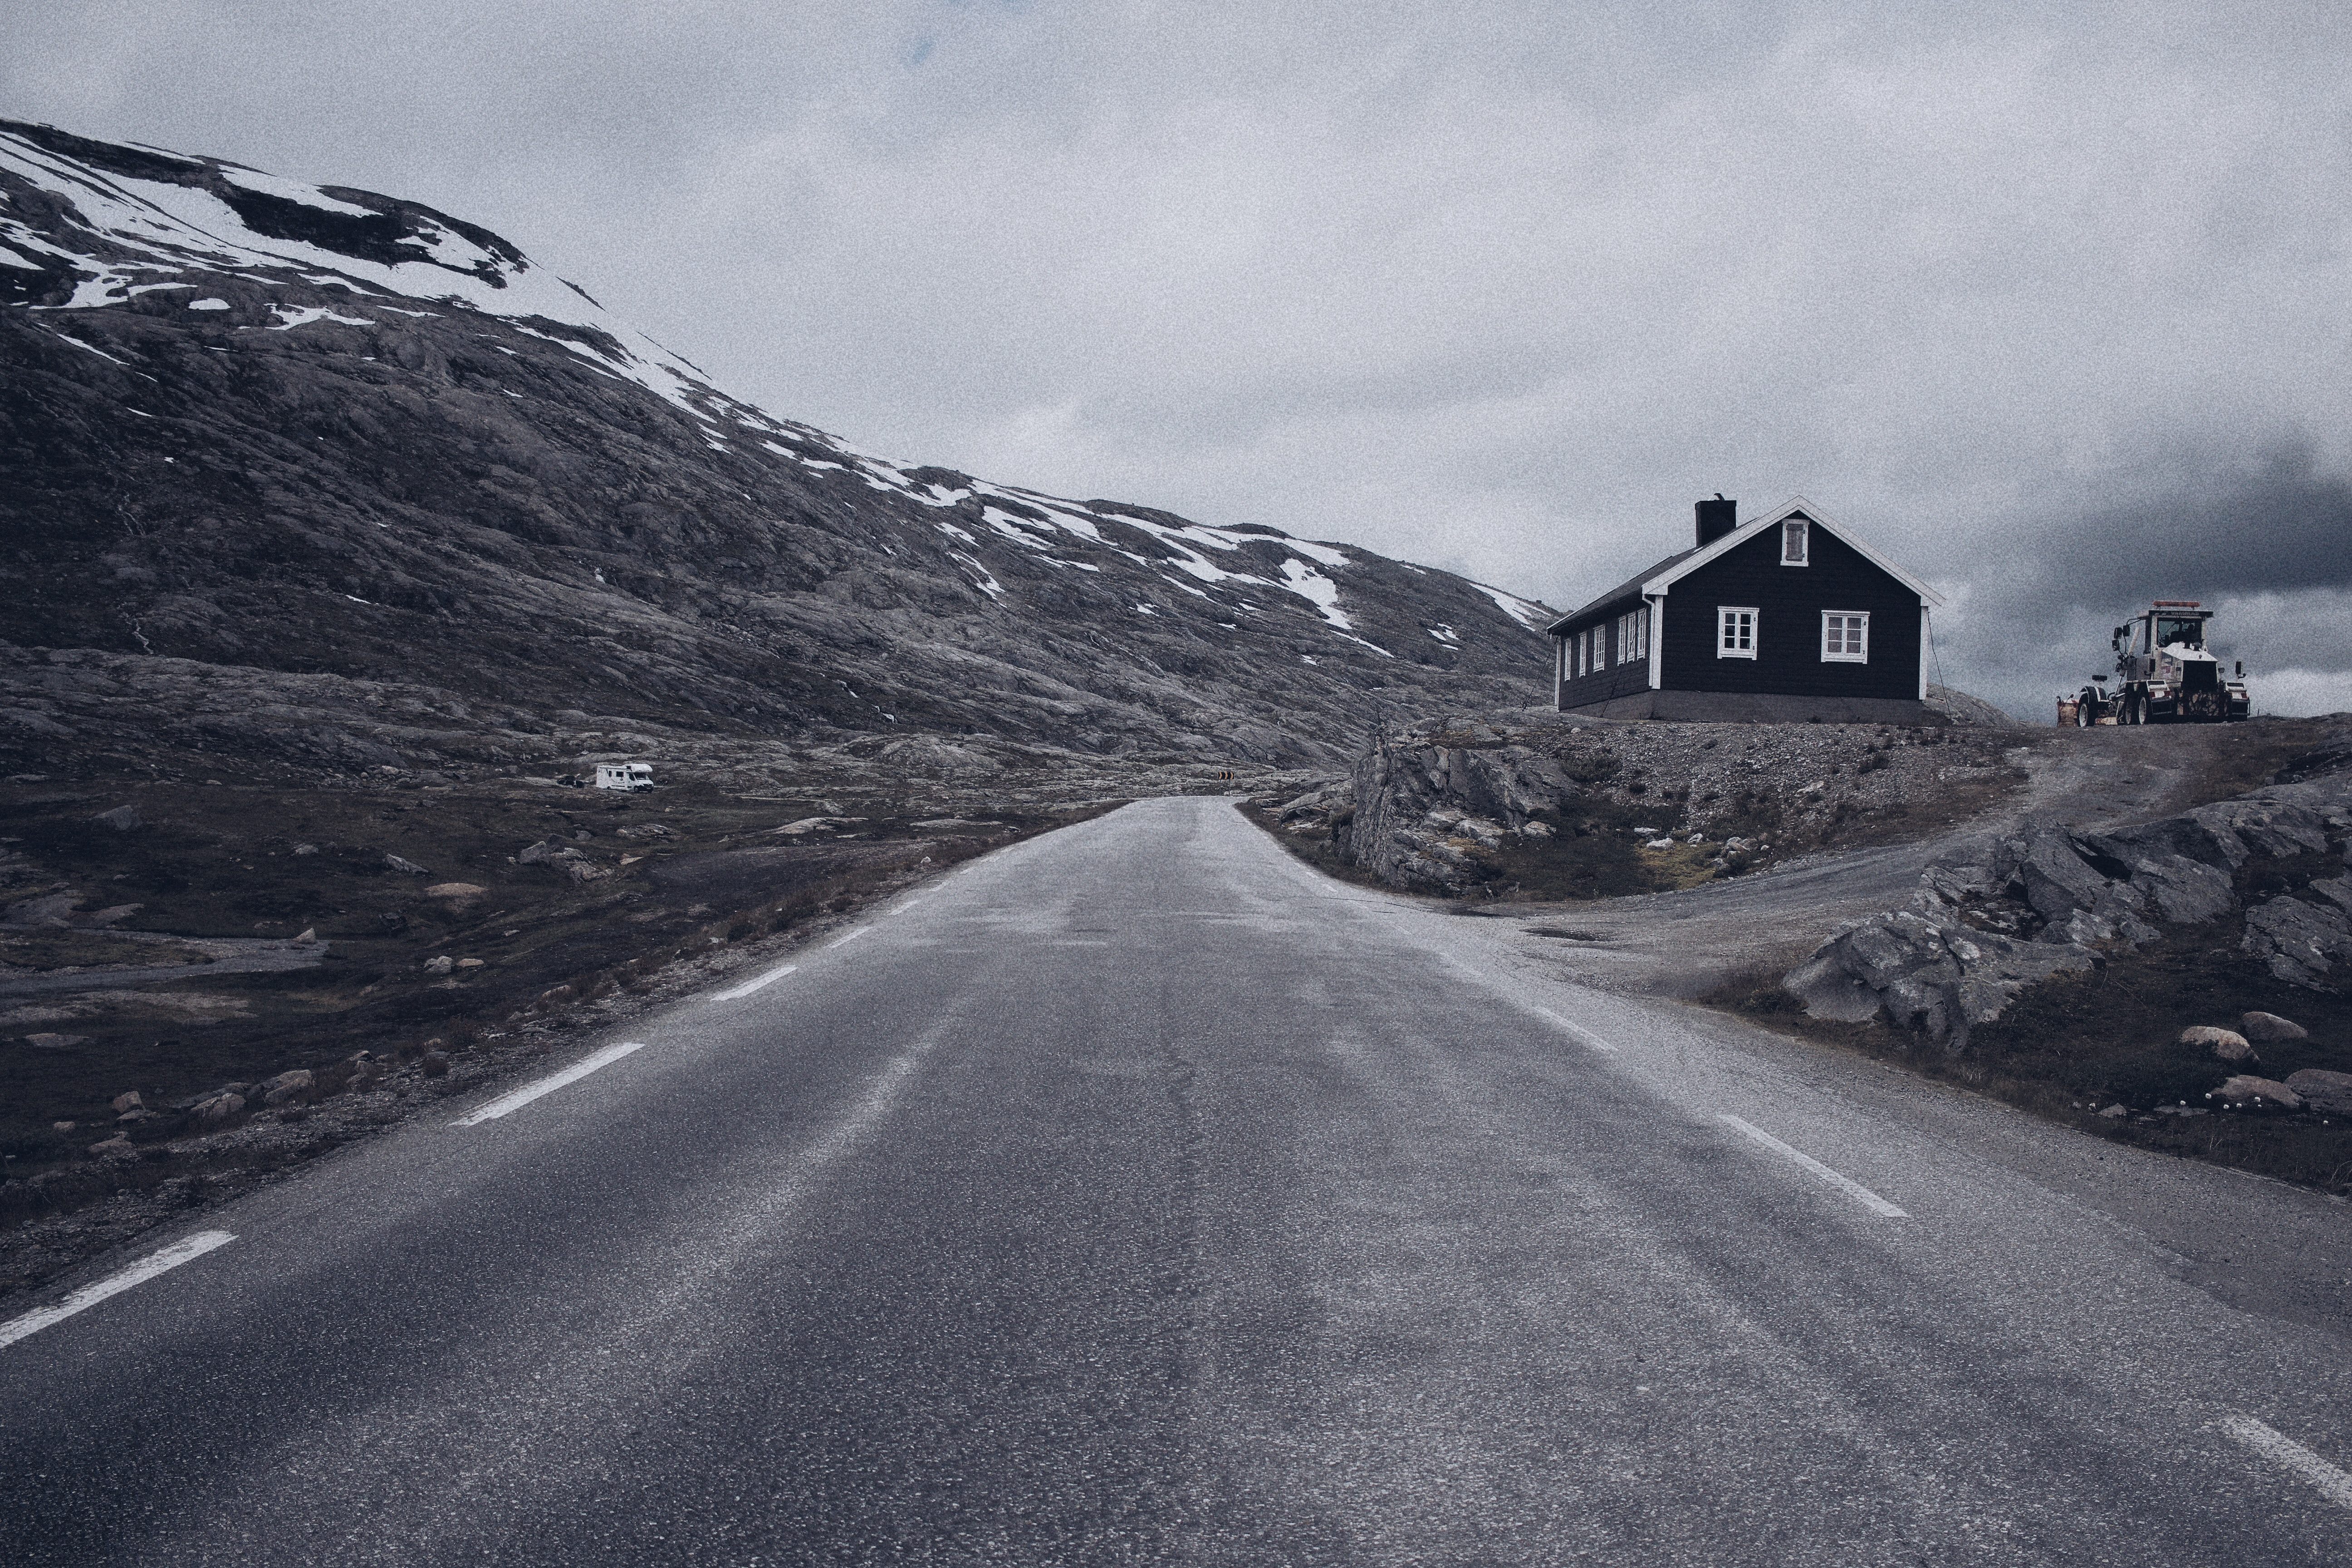 grayscale photo of road beside house